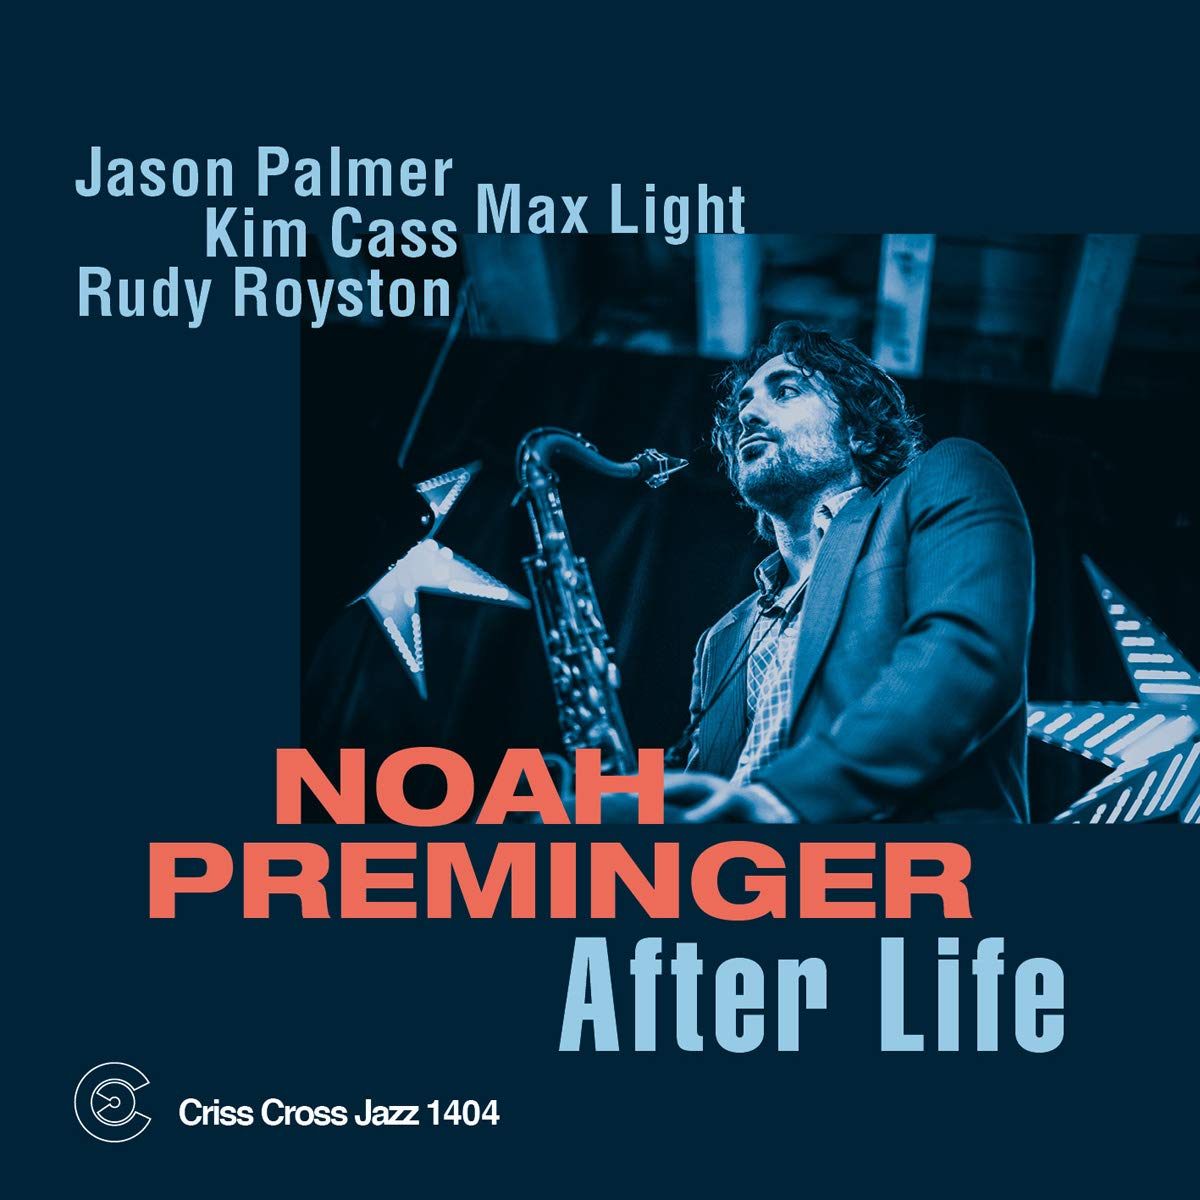 NOAH PREMINGER - After Life cover